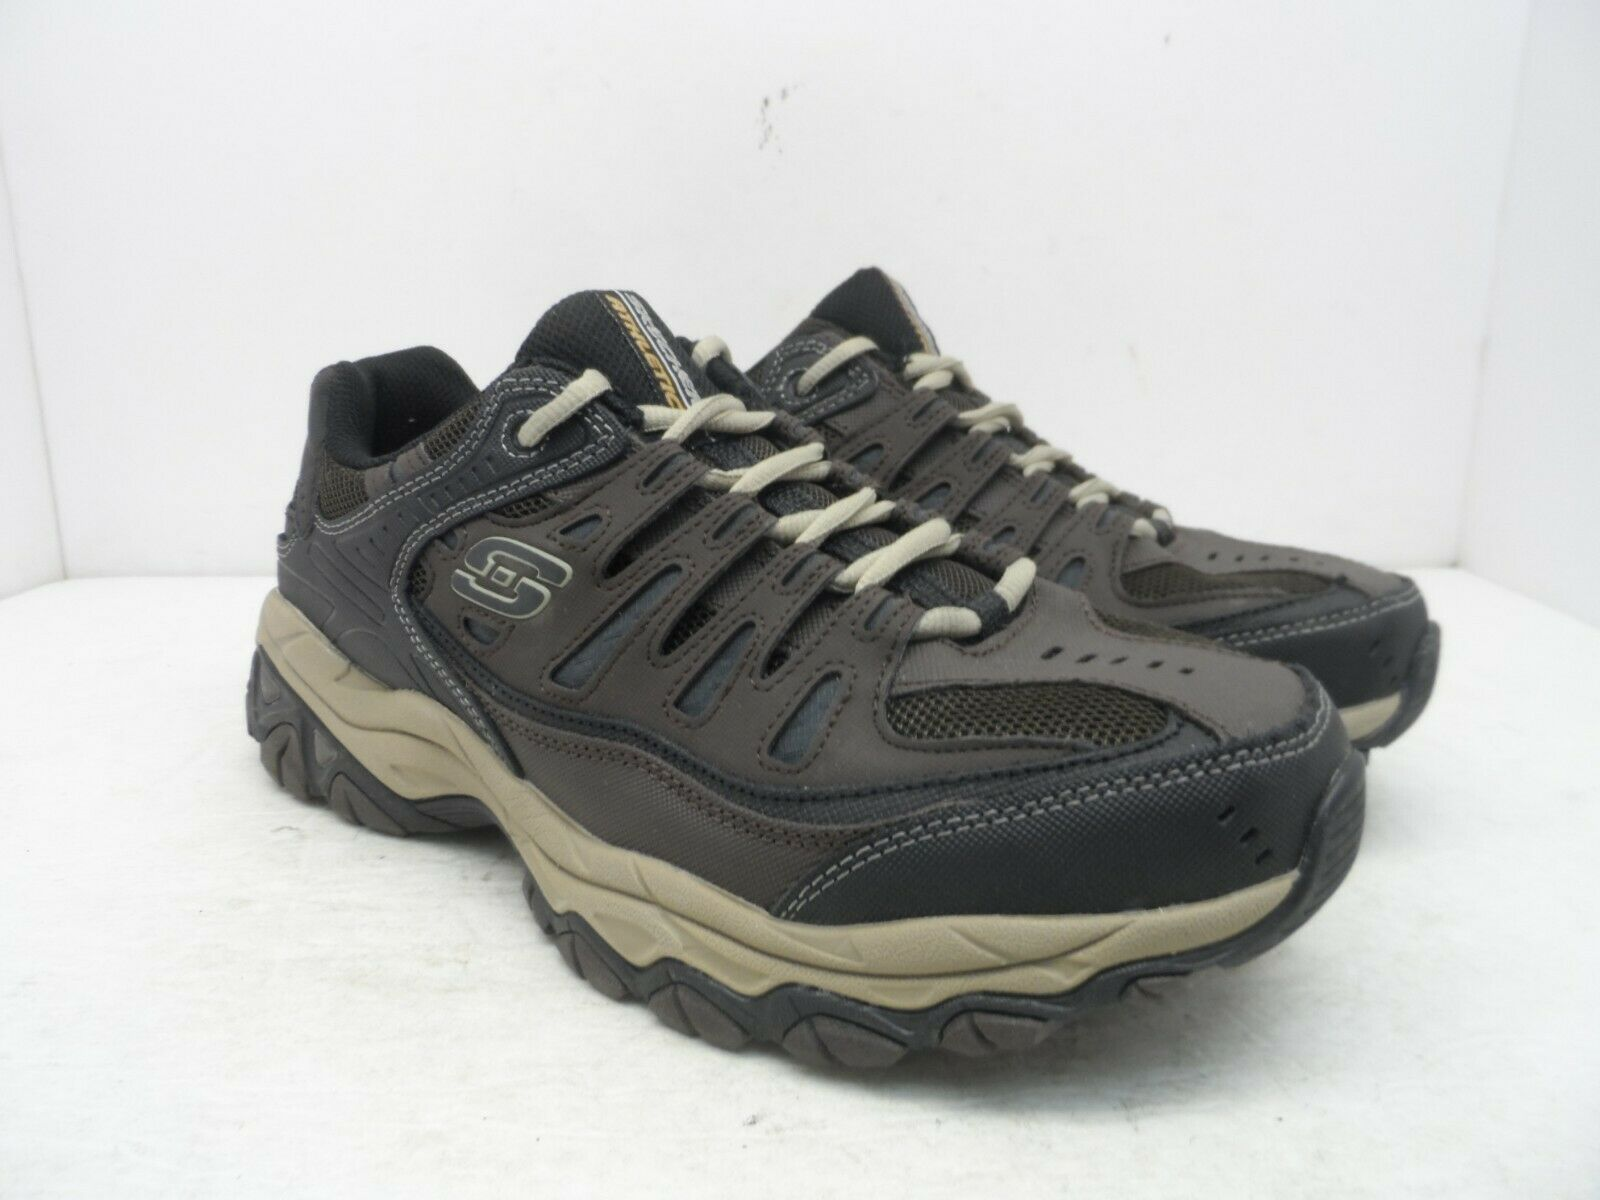 Skechers Sport Men's Afterburn 50125 Memory-Foam Lace-Up shoes Brown Taupe 9.5W